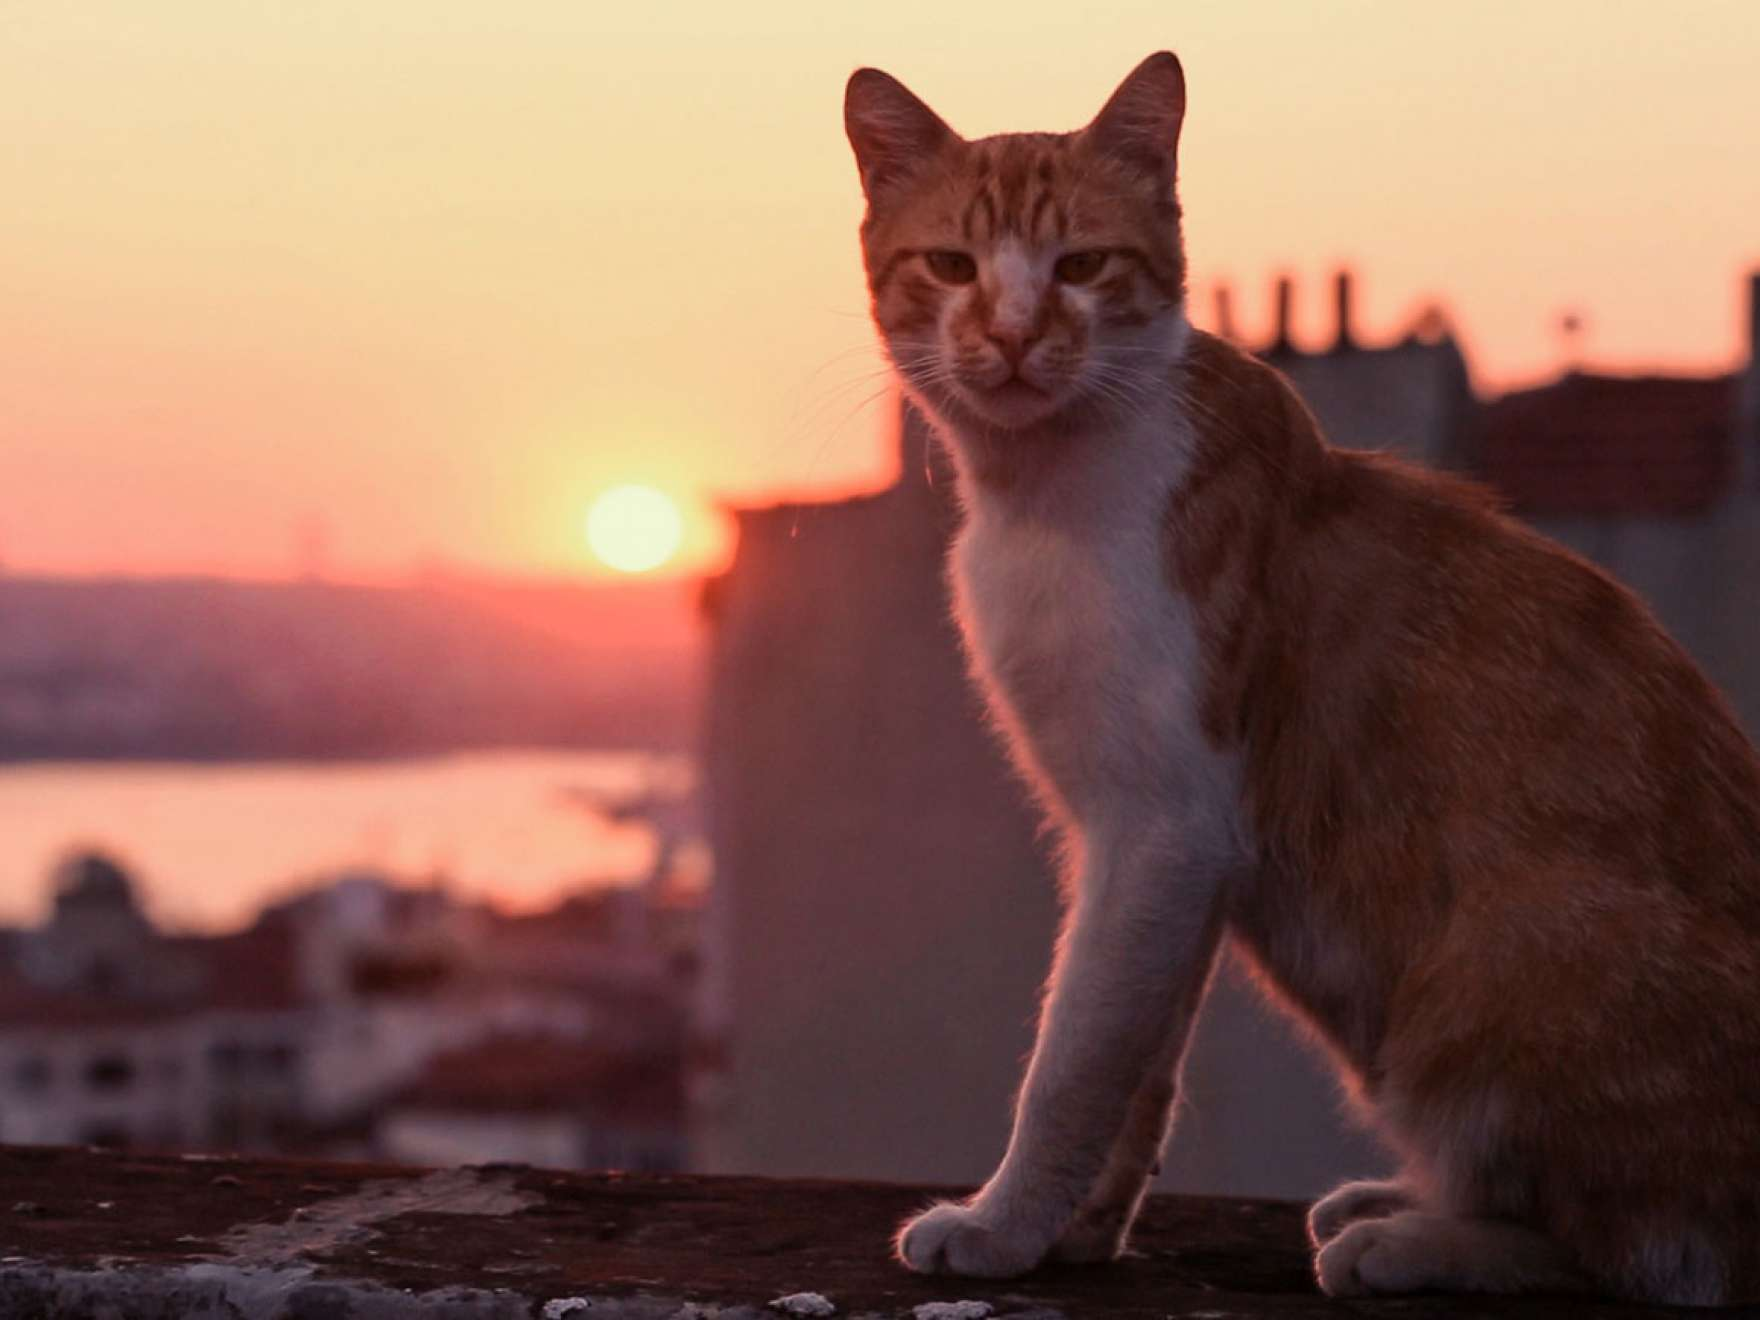 Film still from Kedi